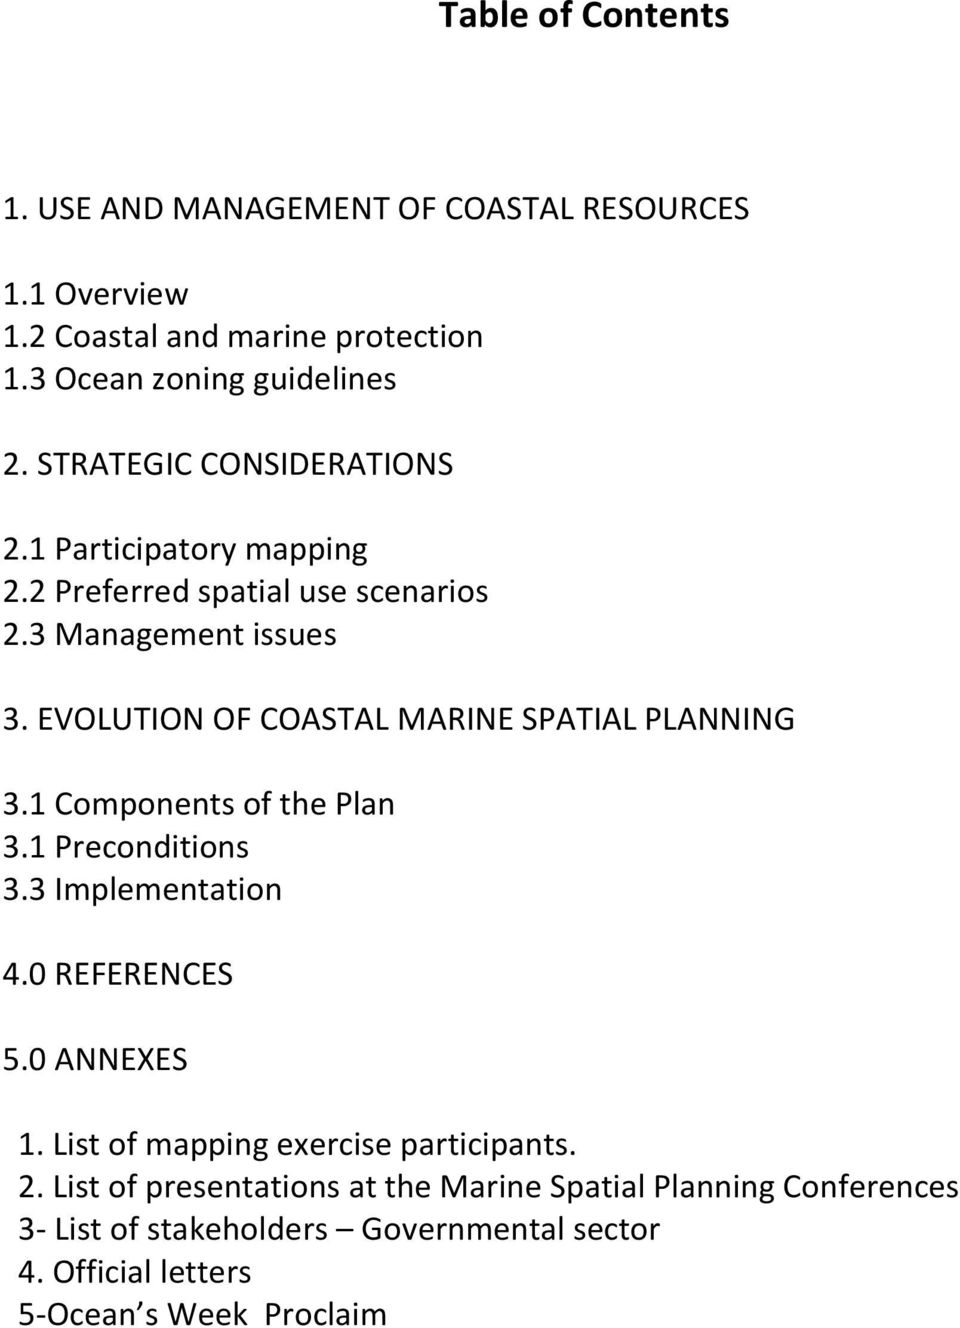 EVOLUTION OF COASTAL MARINE SPATIAL PLANNING 3.1 Components of the Plan 3.1 Preconditions 3.3 Implementation 4.0 REFERENCES 5.0 ANNEXES 1.